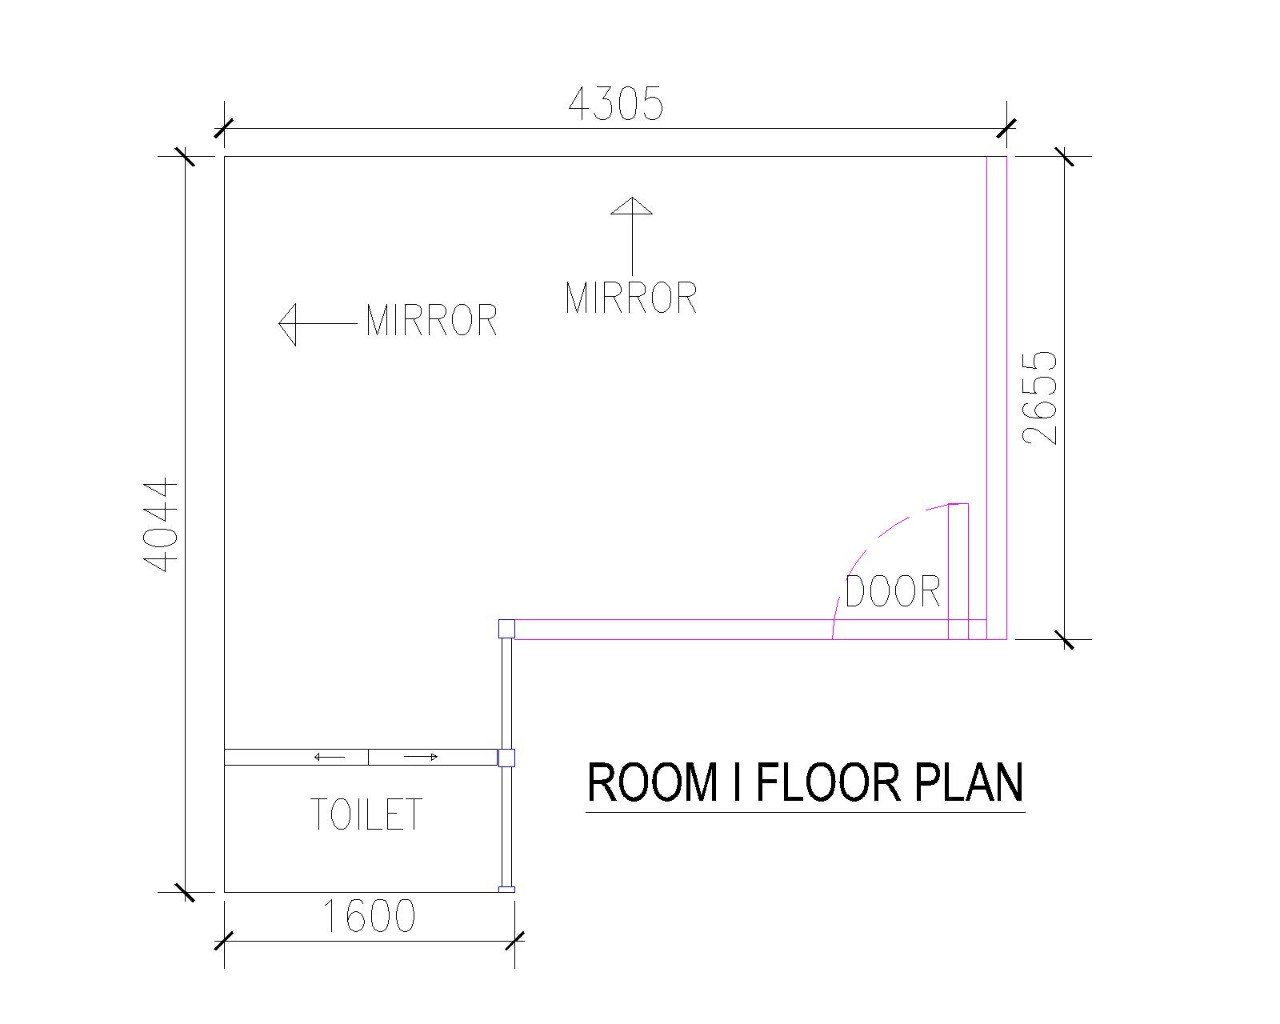 4305 MIRROR MIRROR LO 6OOR ROOM I FLOOR PLAN TOILET 1600  text